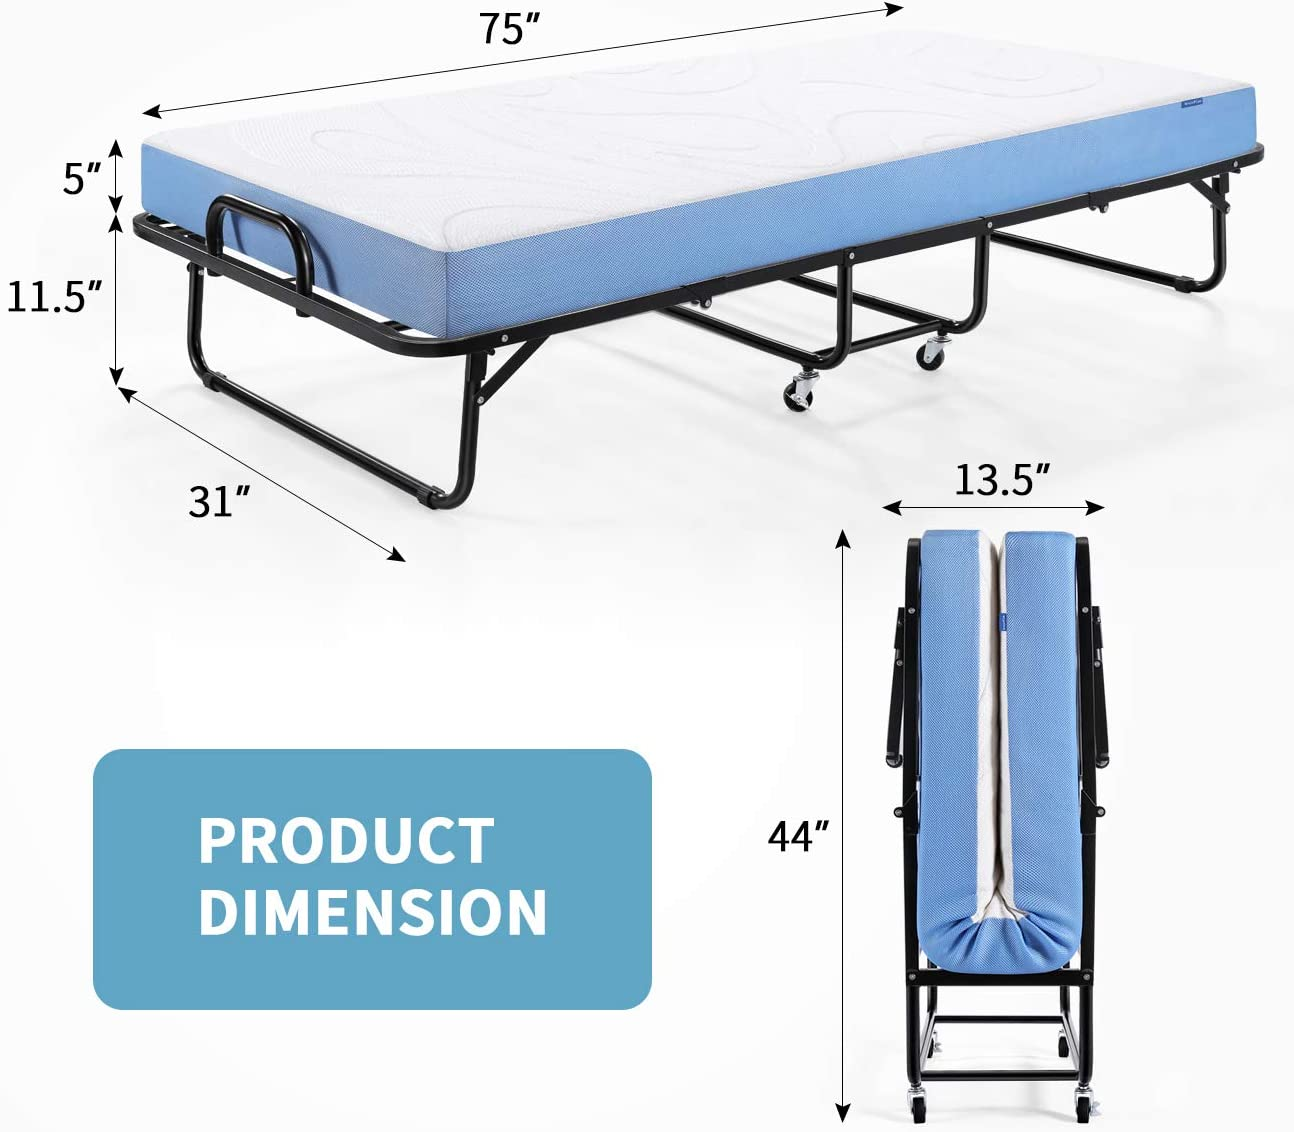 Inofia Twin Folding Bed with 5 Inch Memory Foam Mattress - inofia